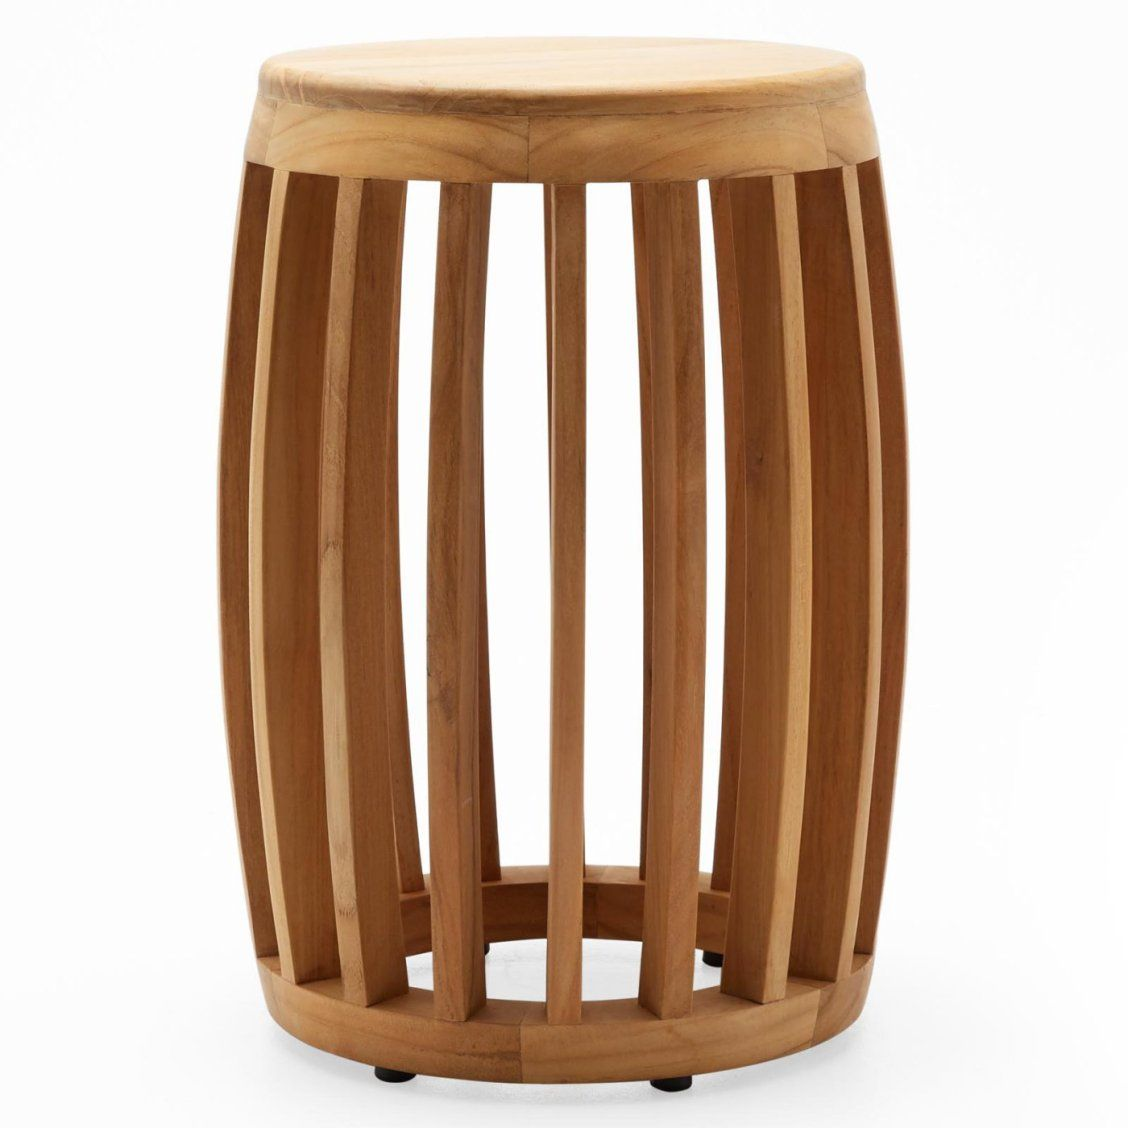 Modrn Teak Wood Slat Garden Stool In 2019 Wood Slats